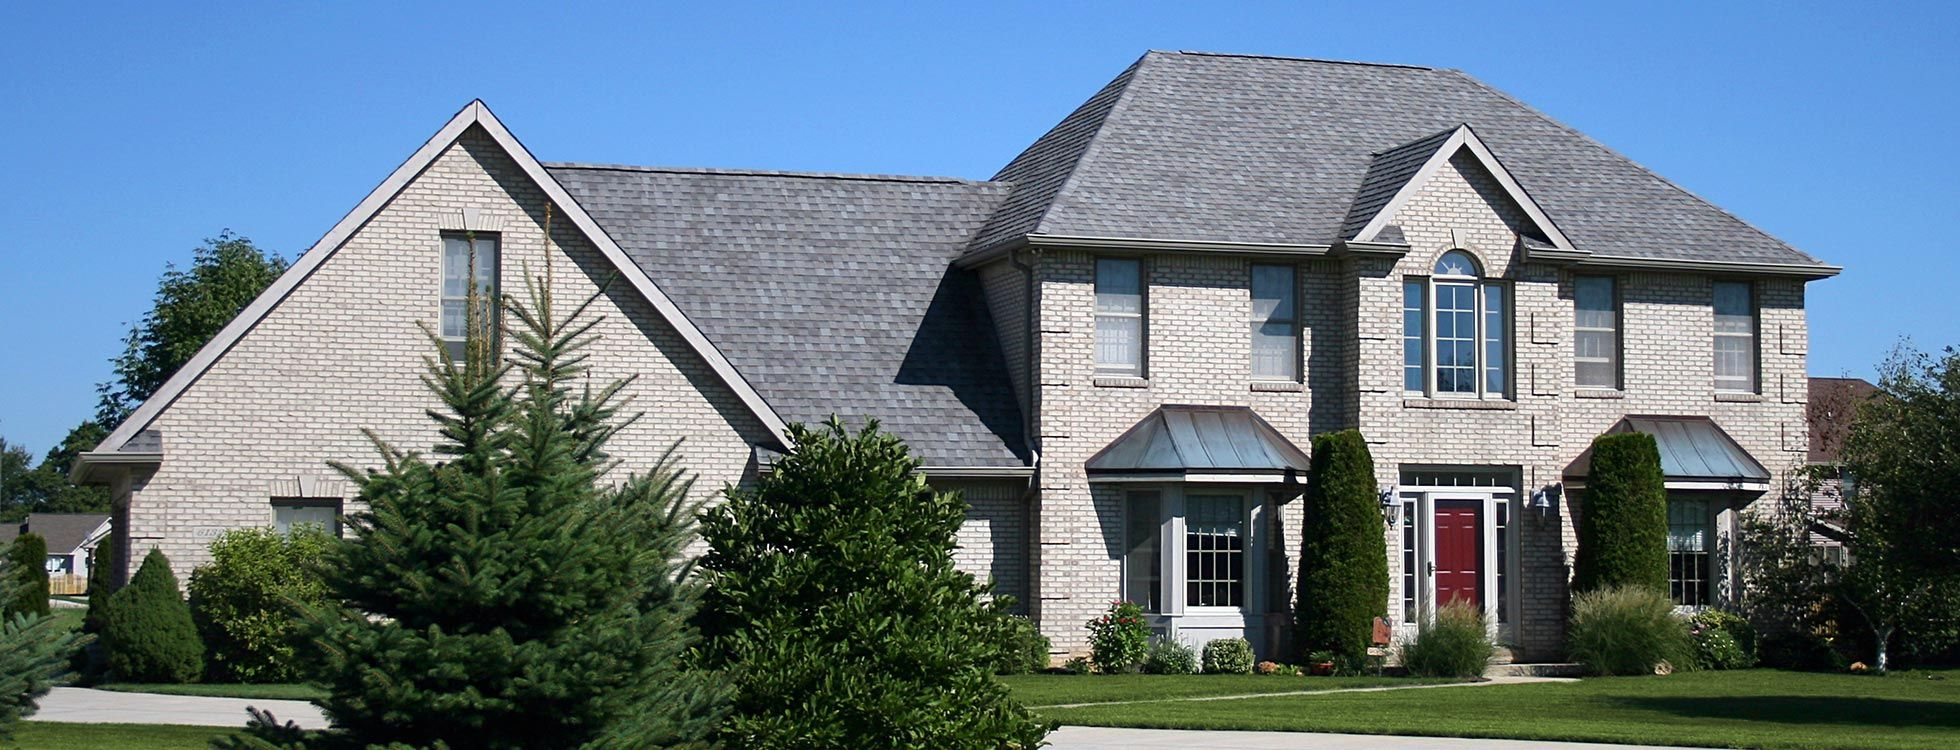 Mortgage Rates Windsor Axiom Mortgage Solutions